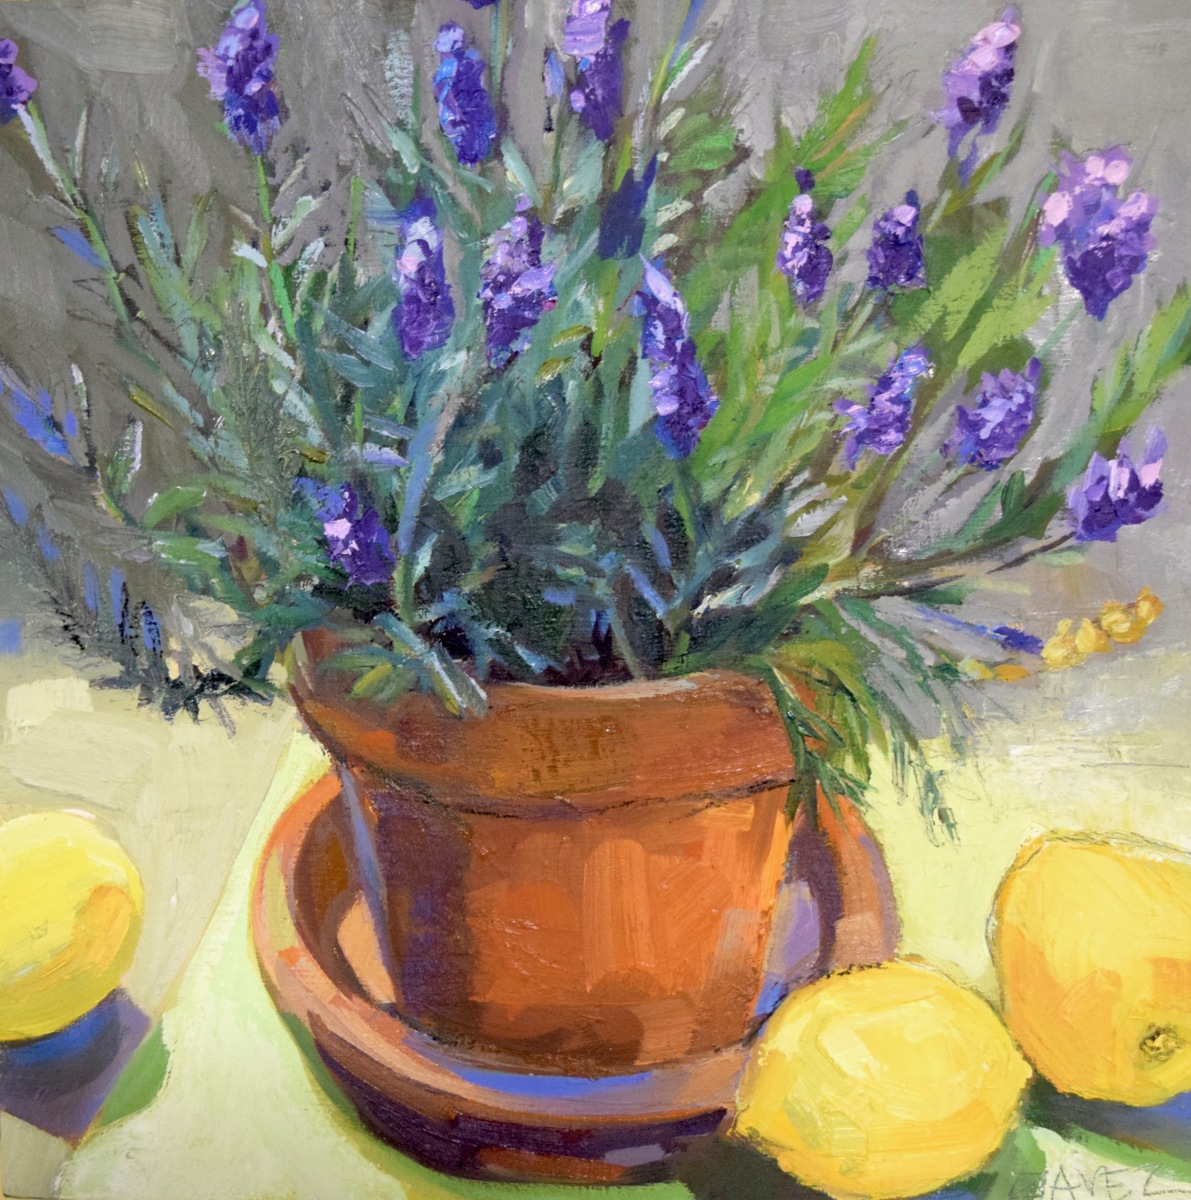 Lavender with Lemons (large view)